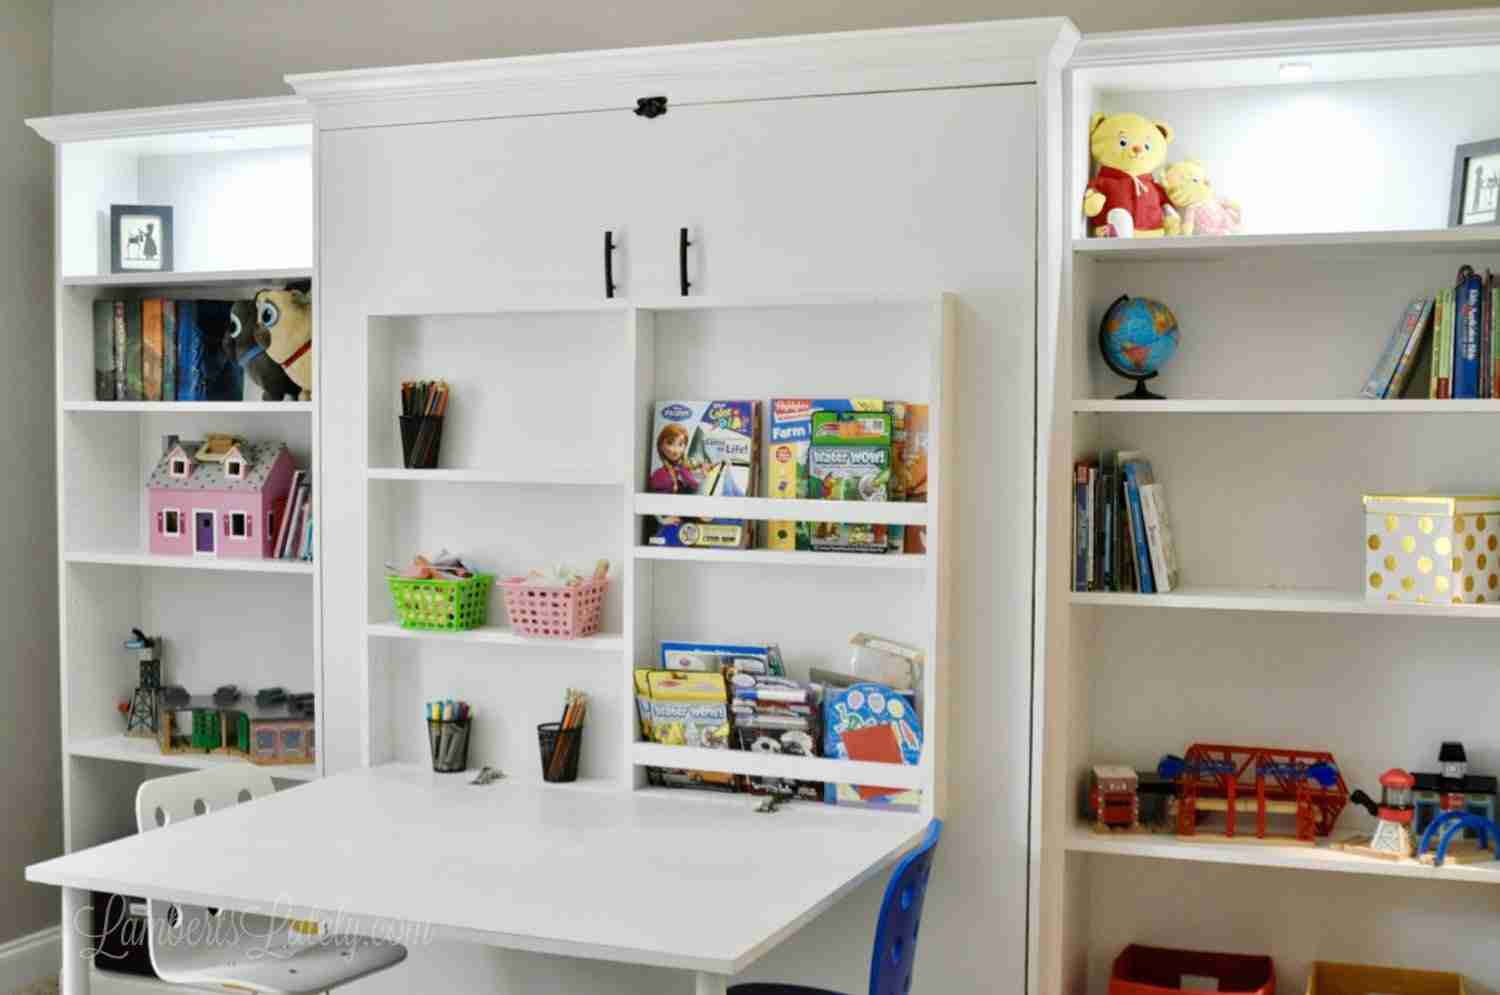 How To Build A Diy Murphy Bed With Desk, How To Add A Desk Murphy Bed